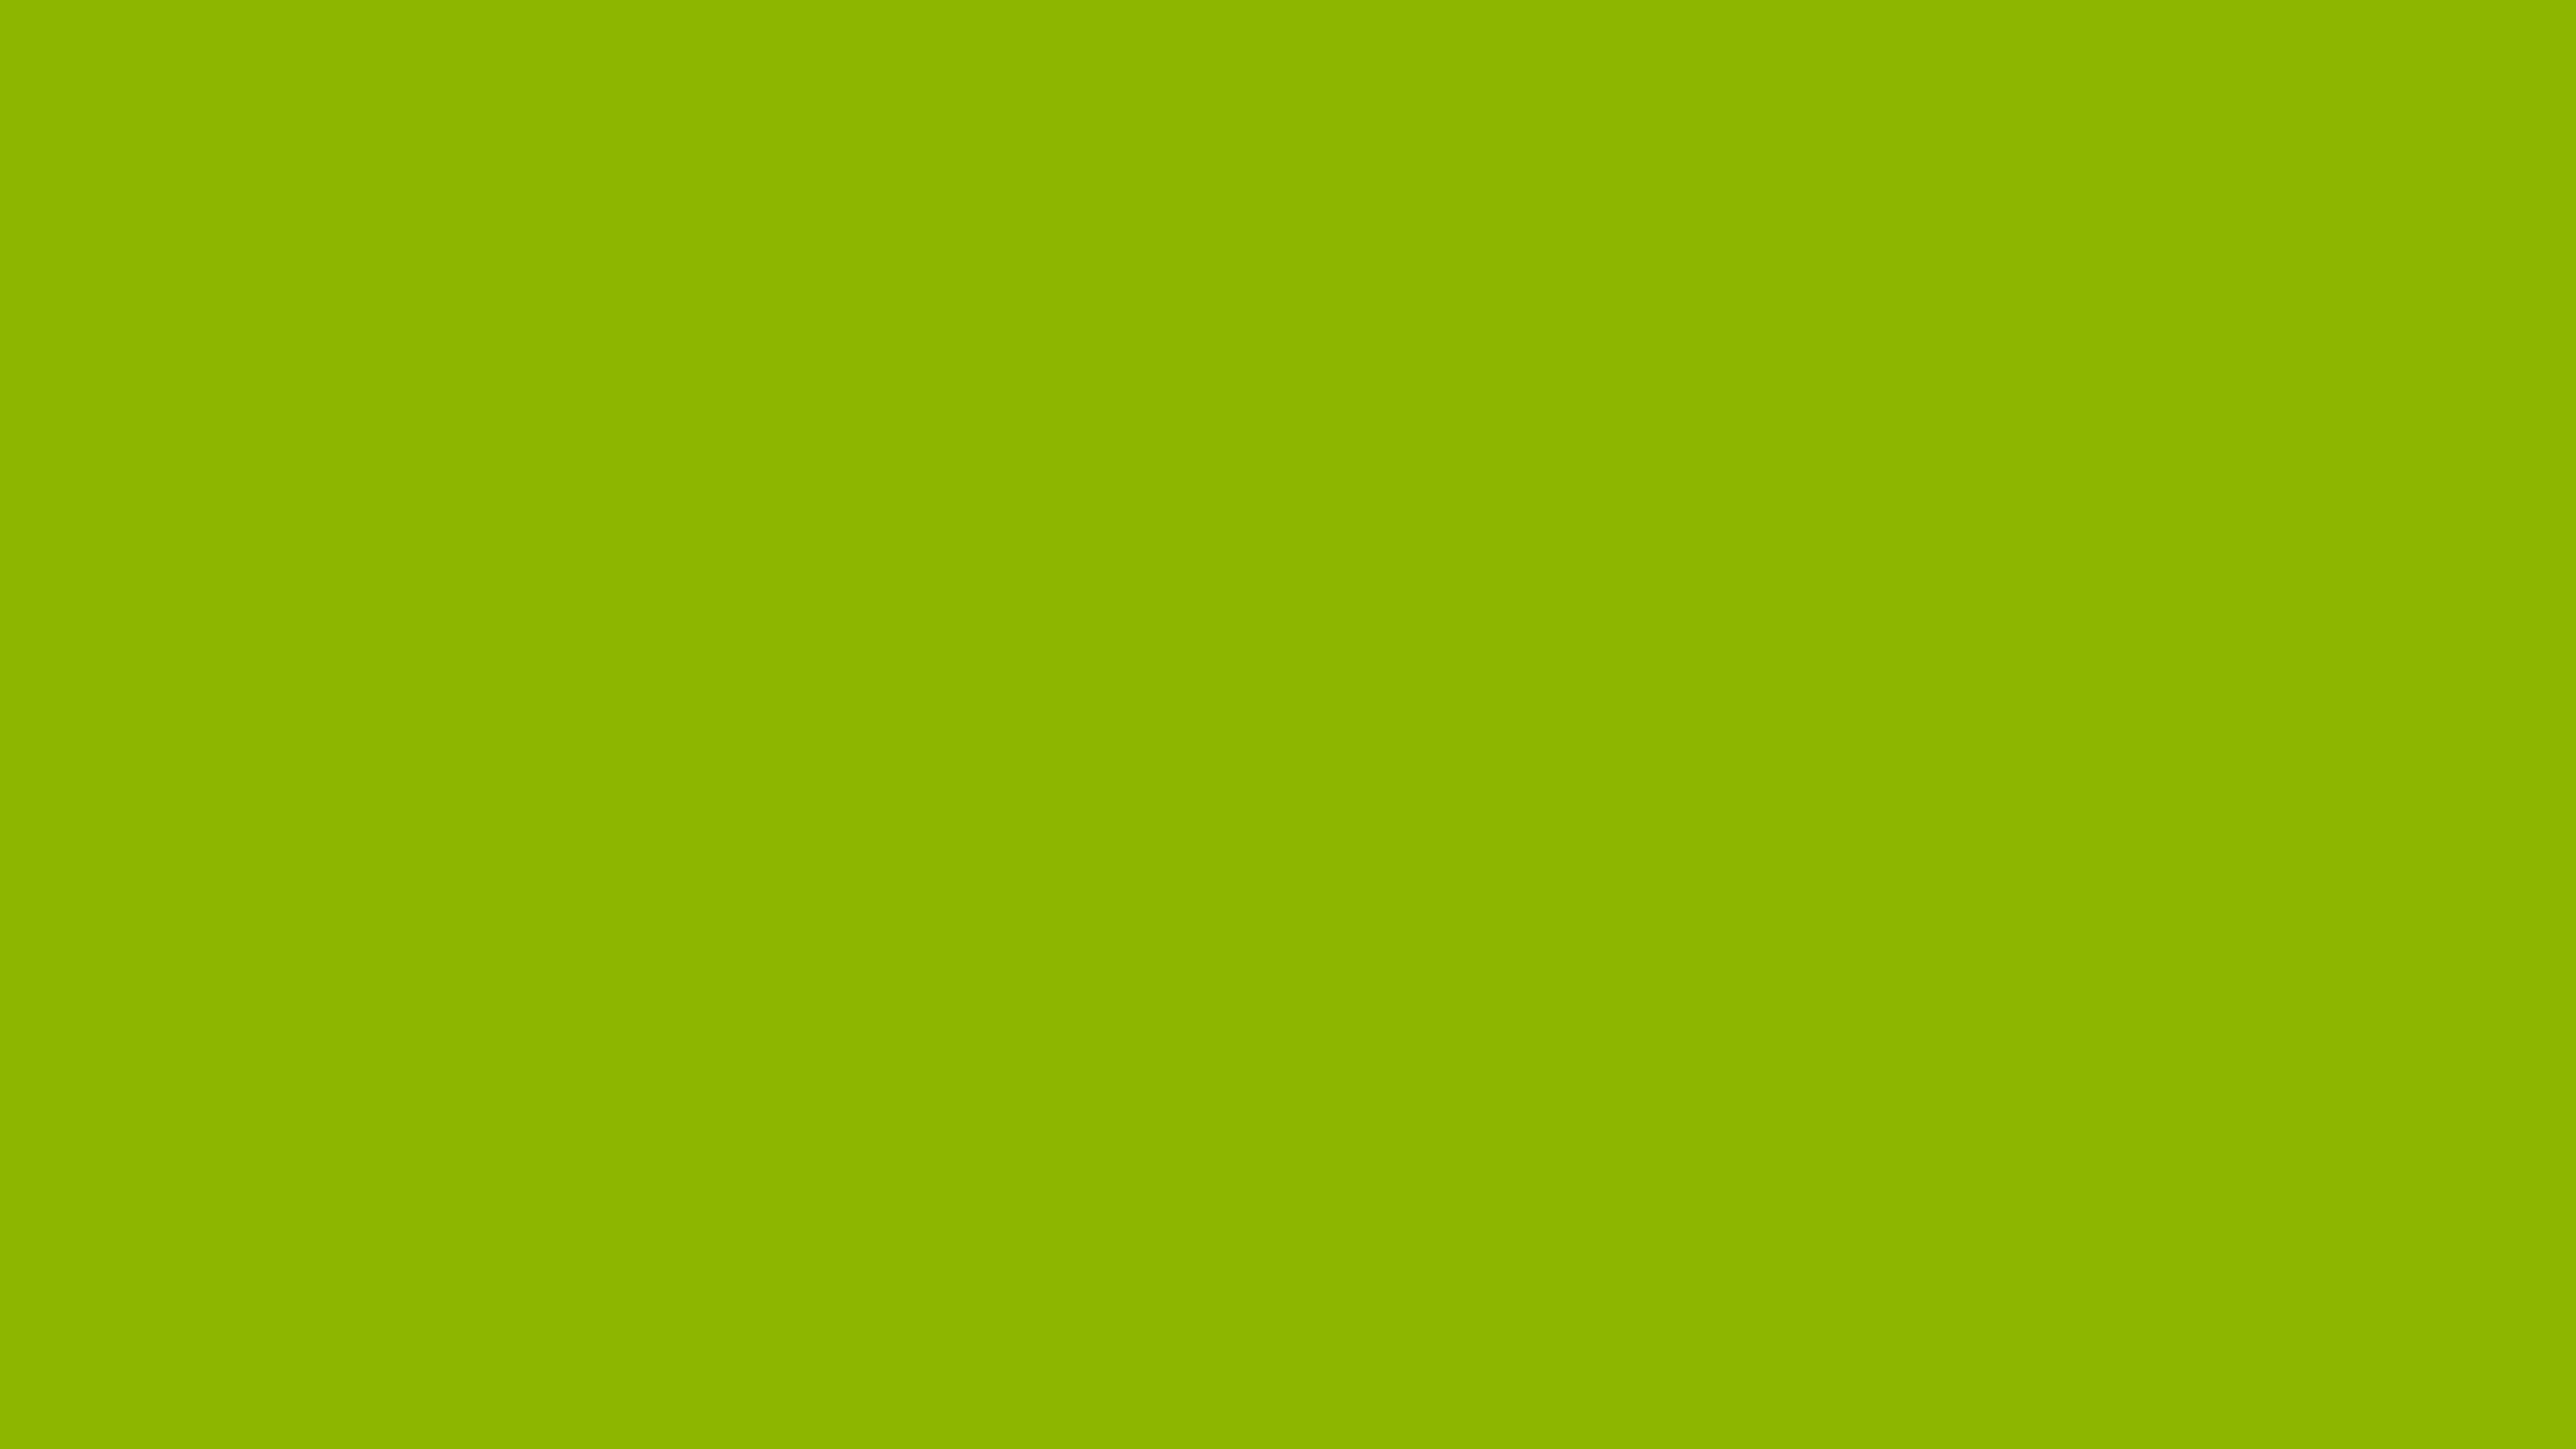 7680x4320 Apple Green Solid Color Background